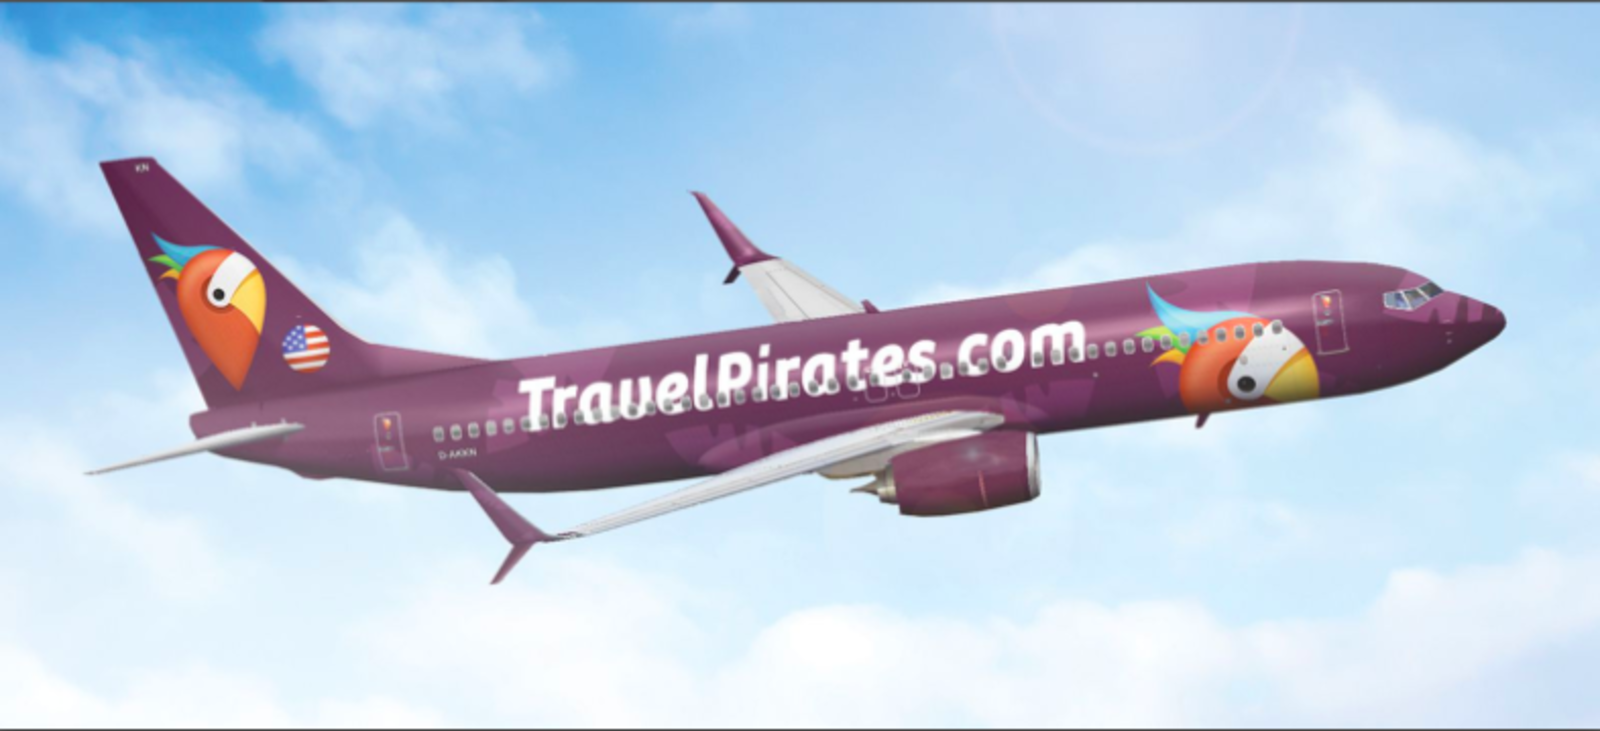 Impressions and Other Assets/TravelPiratesAir_y8jpmv